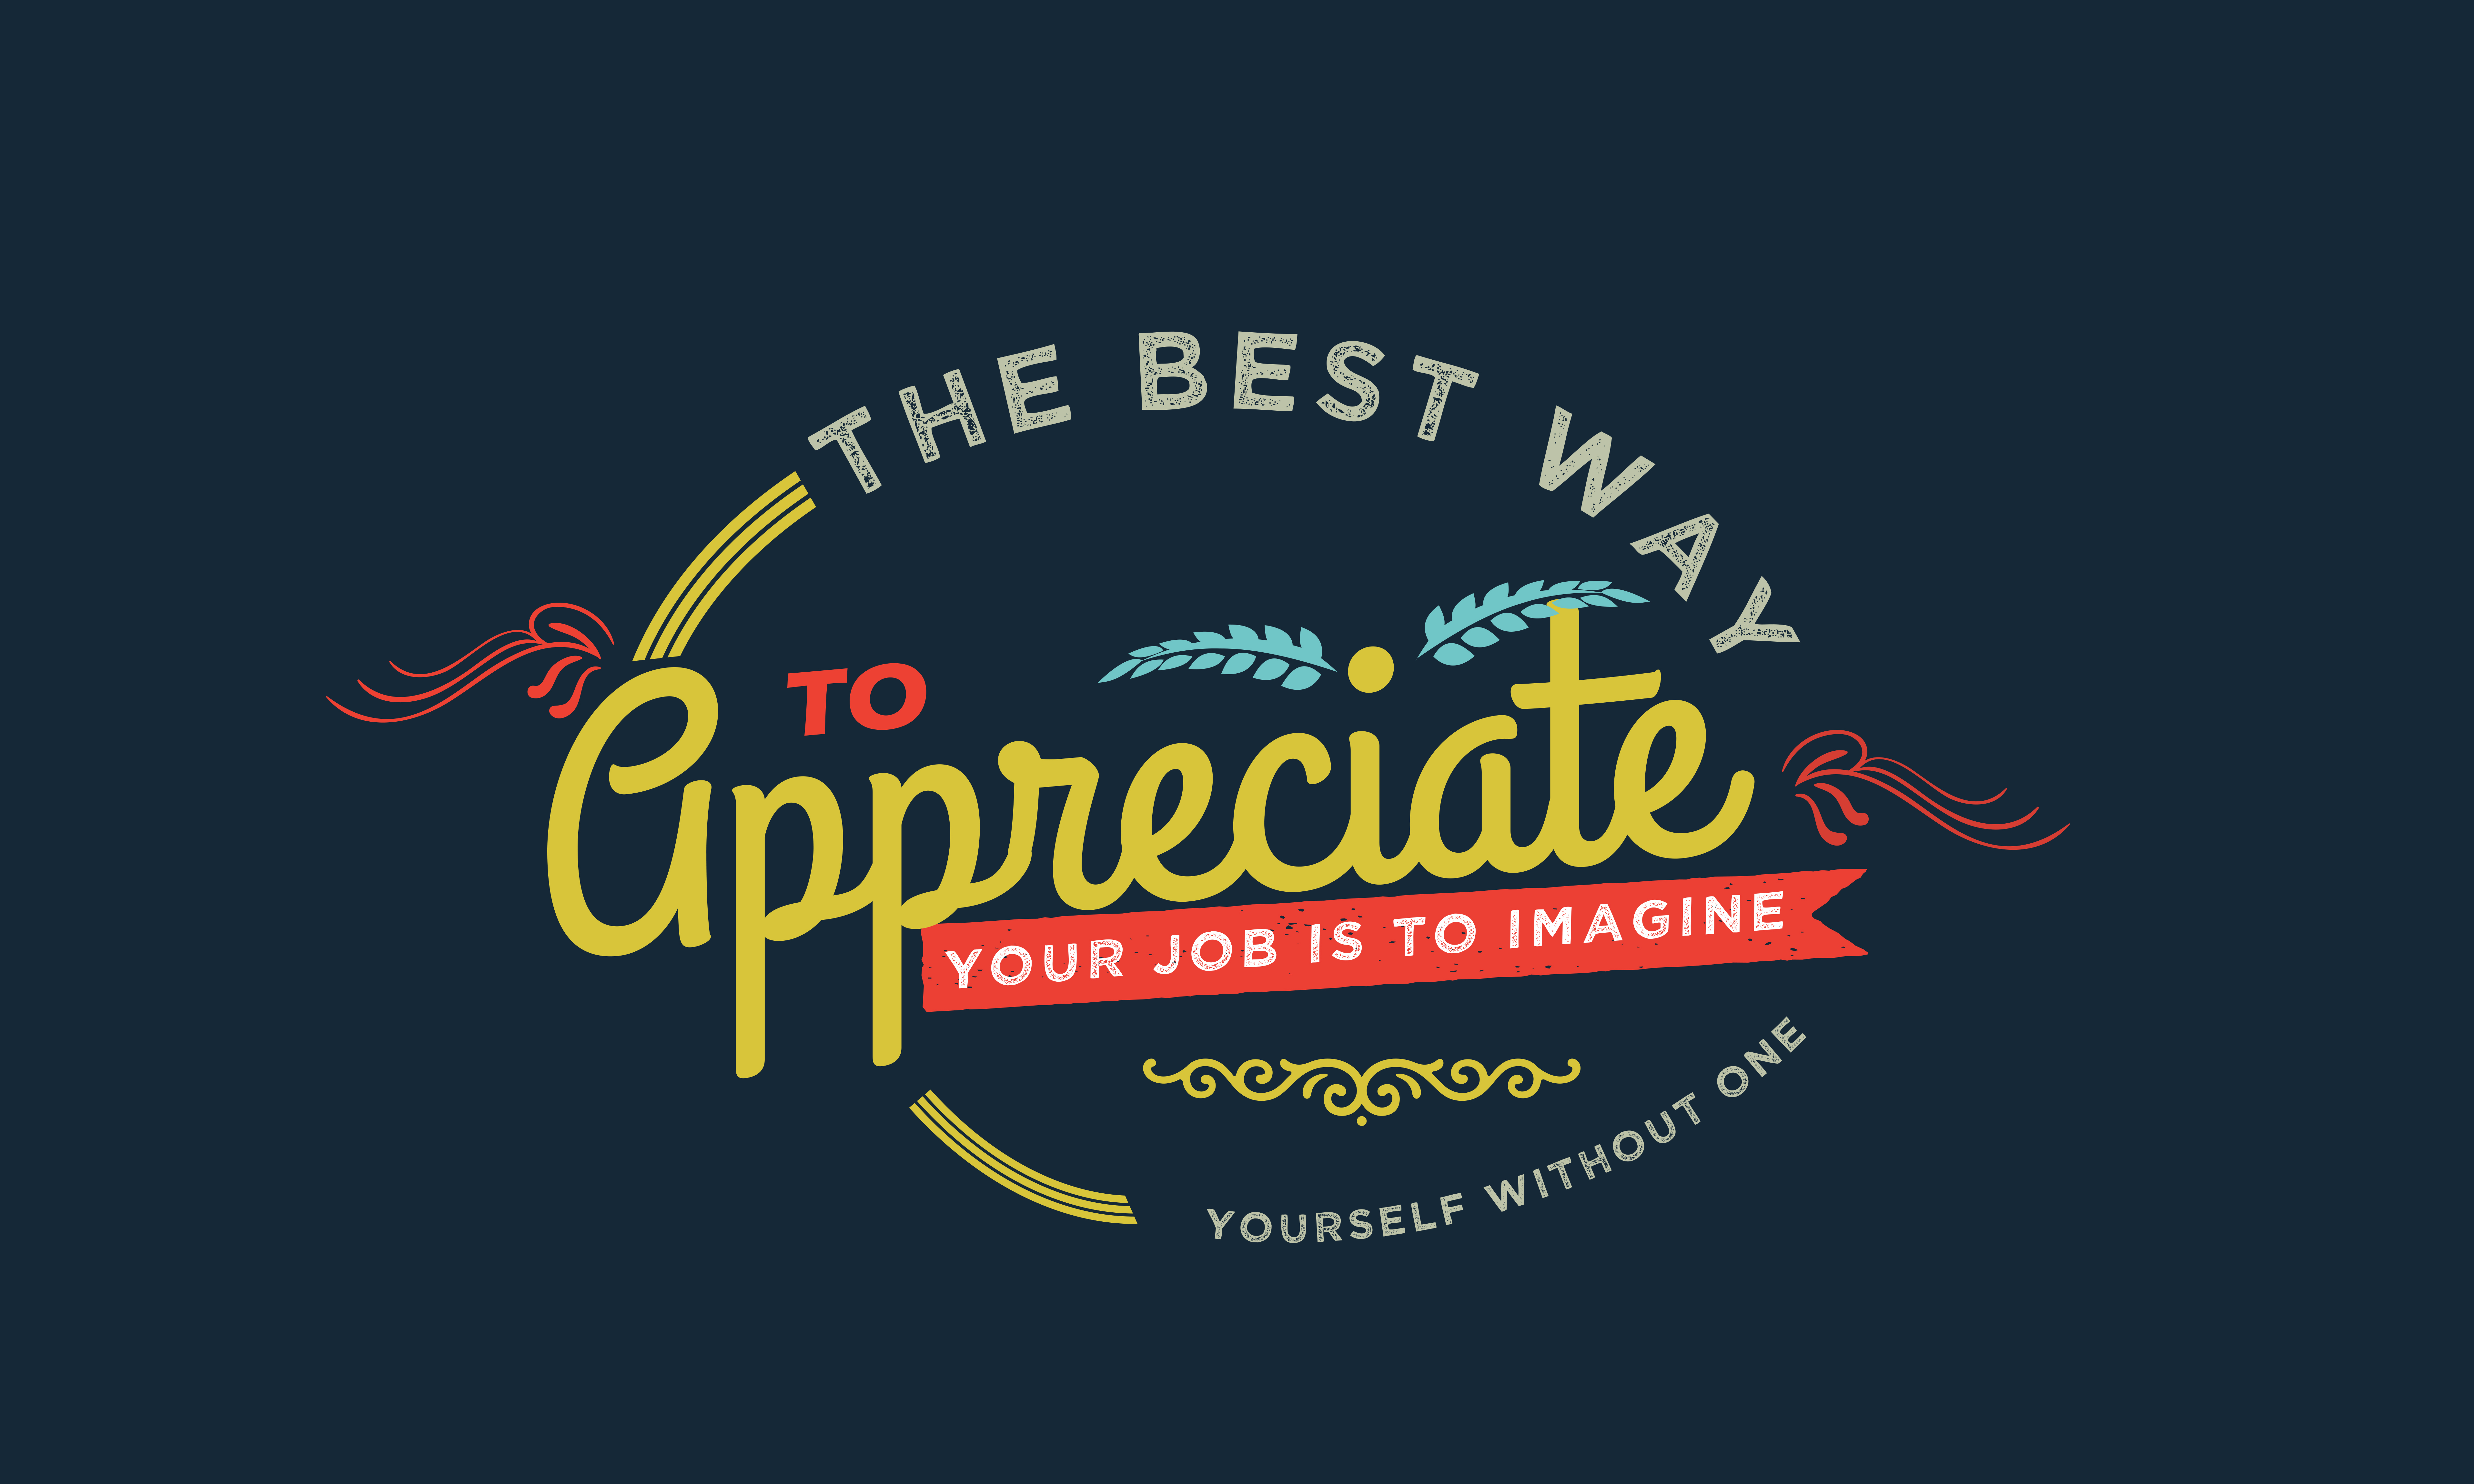 Download Free The Best Way To Appreciate Your Job Graphic By Baraeiji for Cricut Explore, Silhouette and other cutting machines.